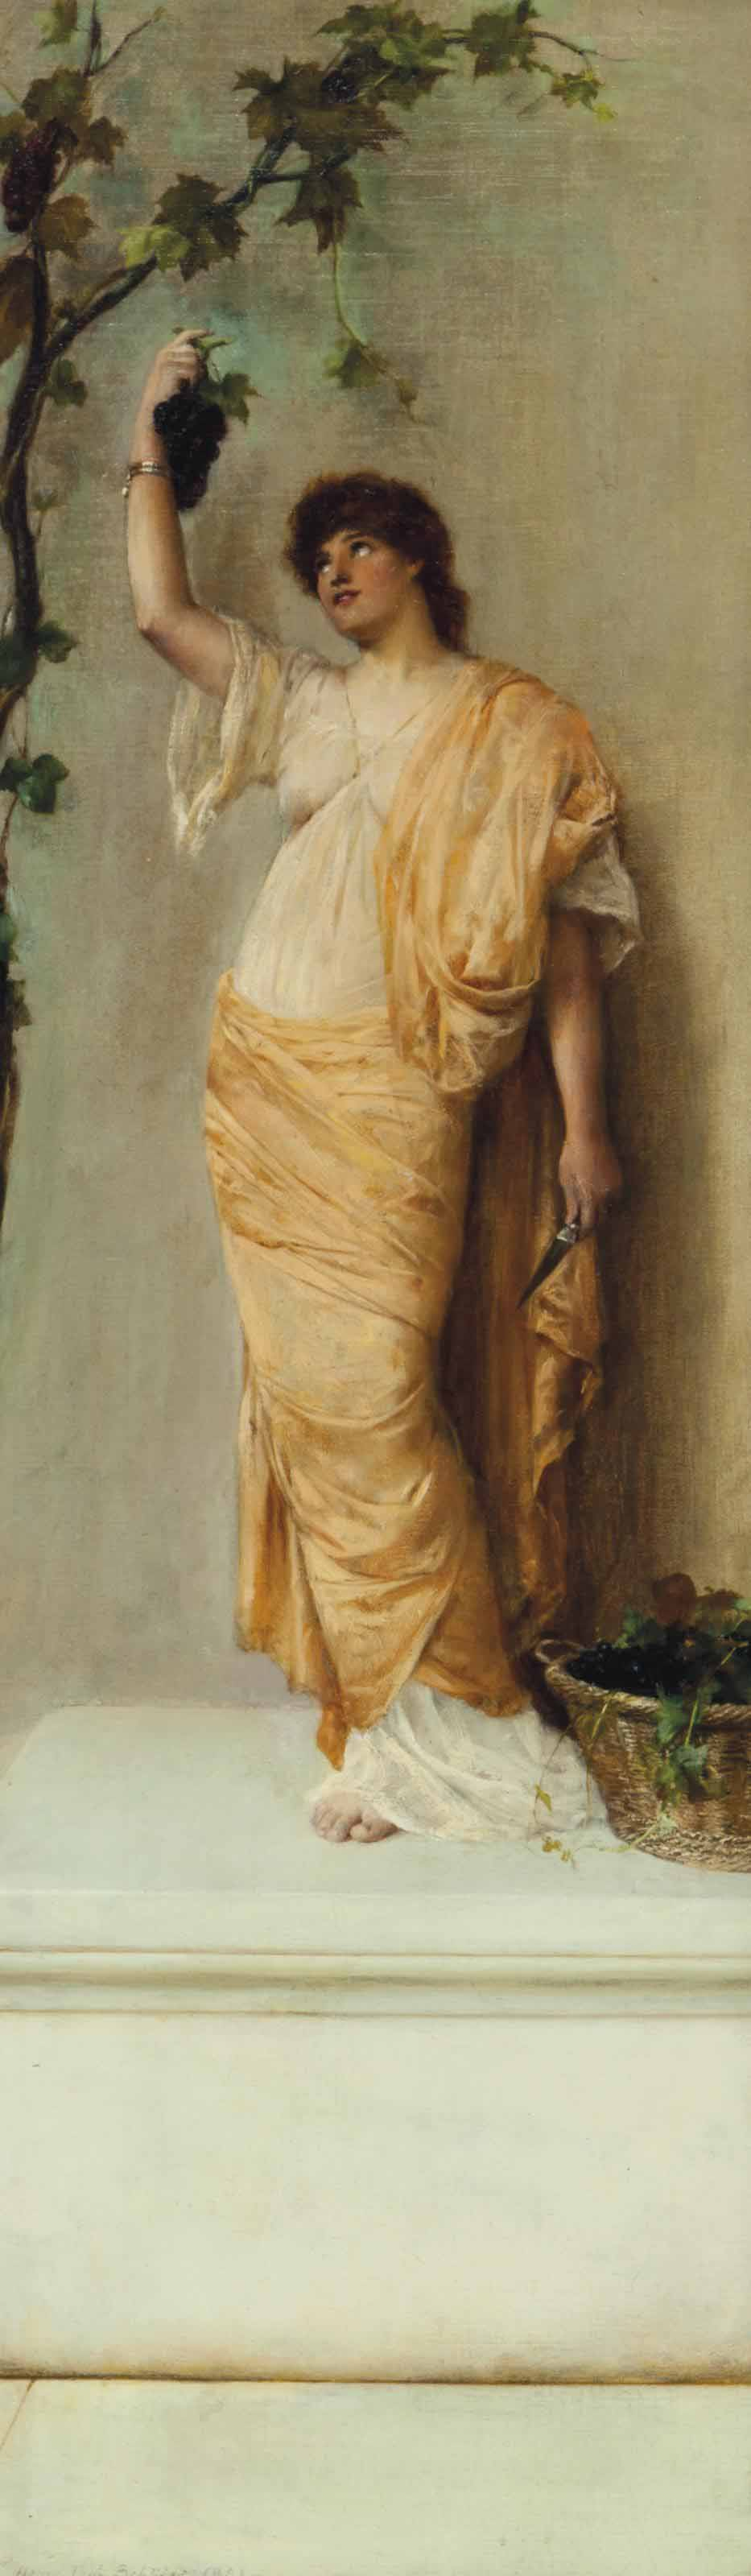 Lady with grapes